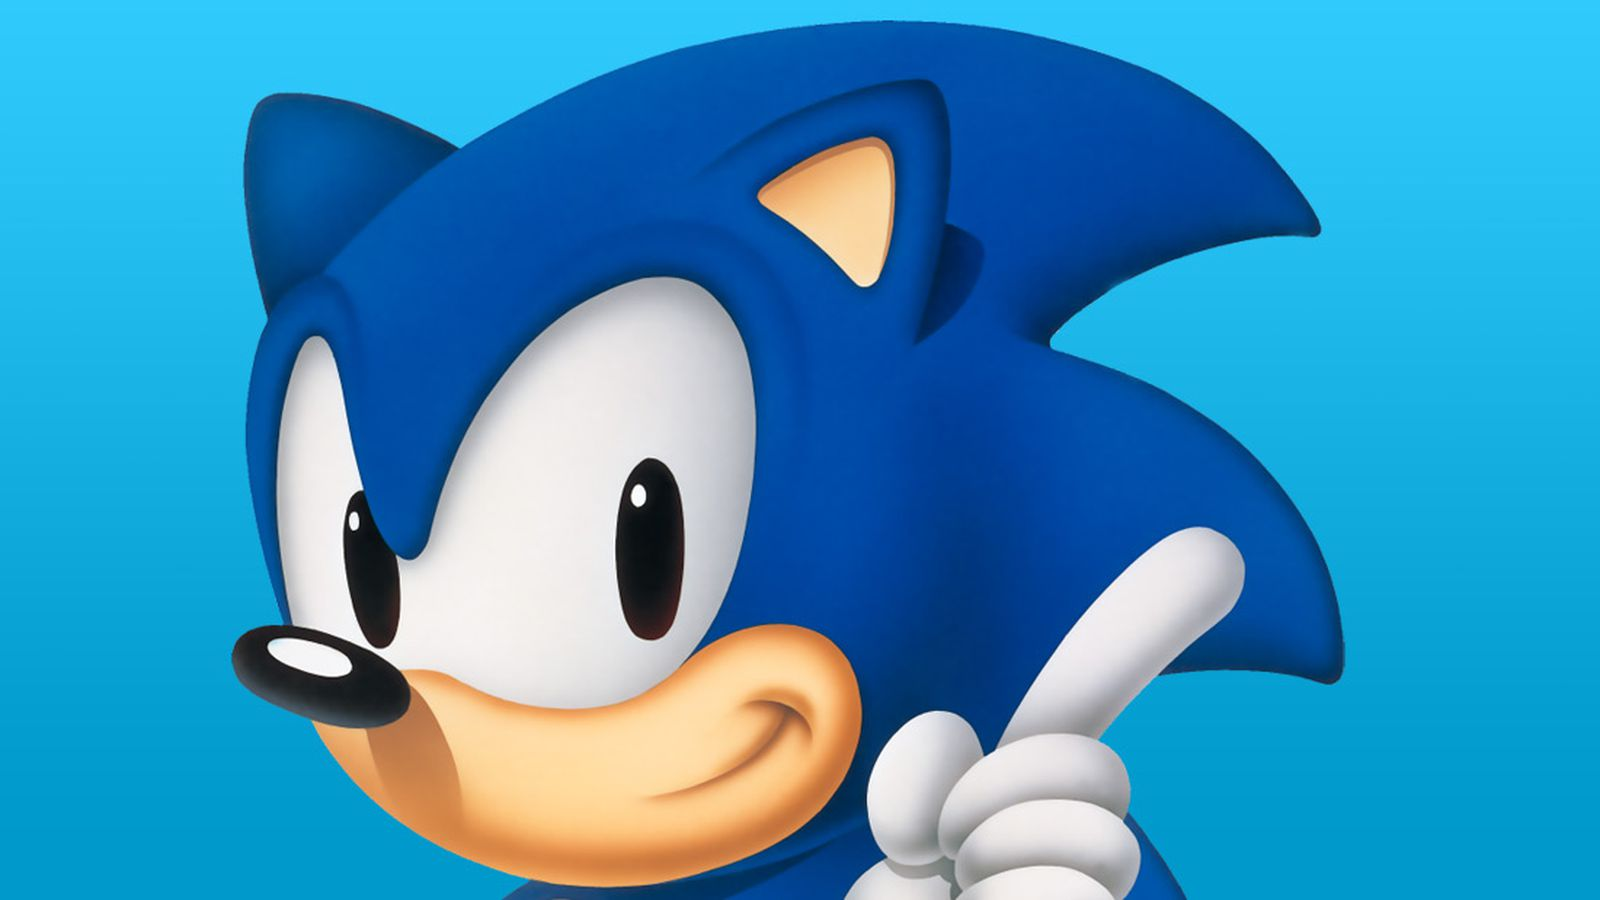 Sonic Returns To Comics In With New Publisher